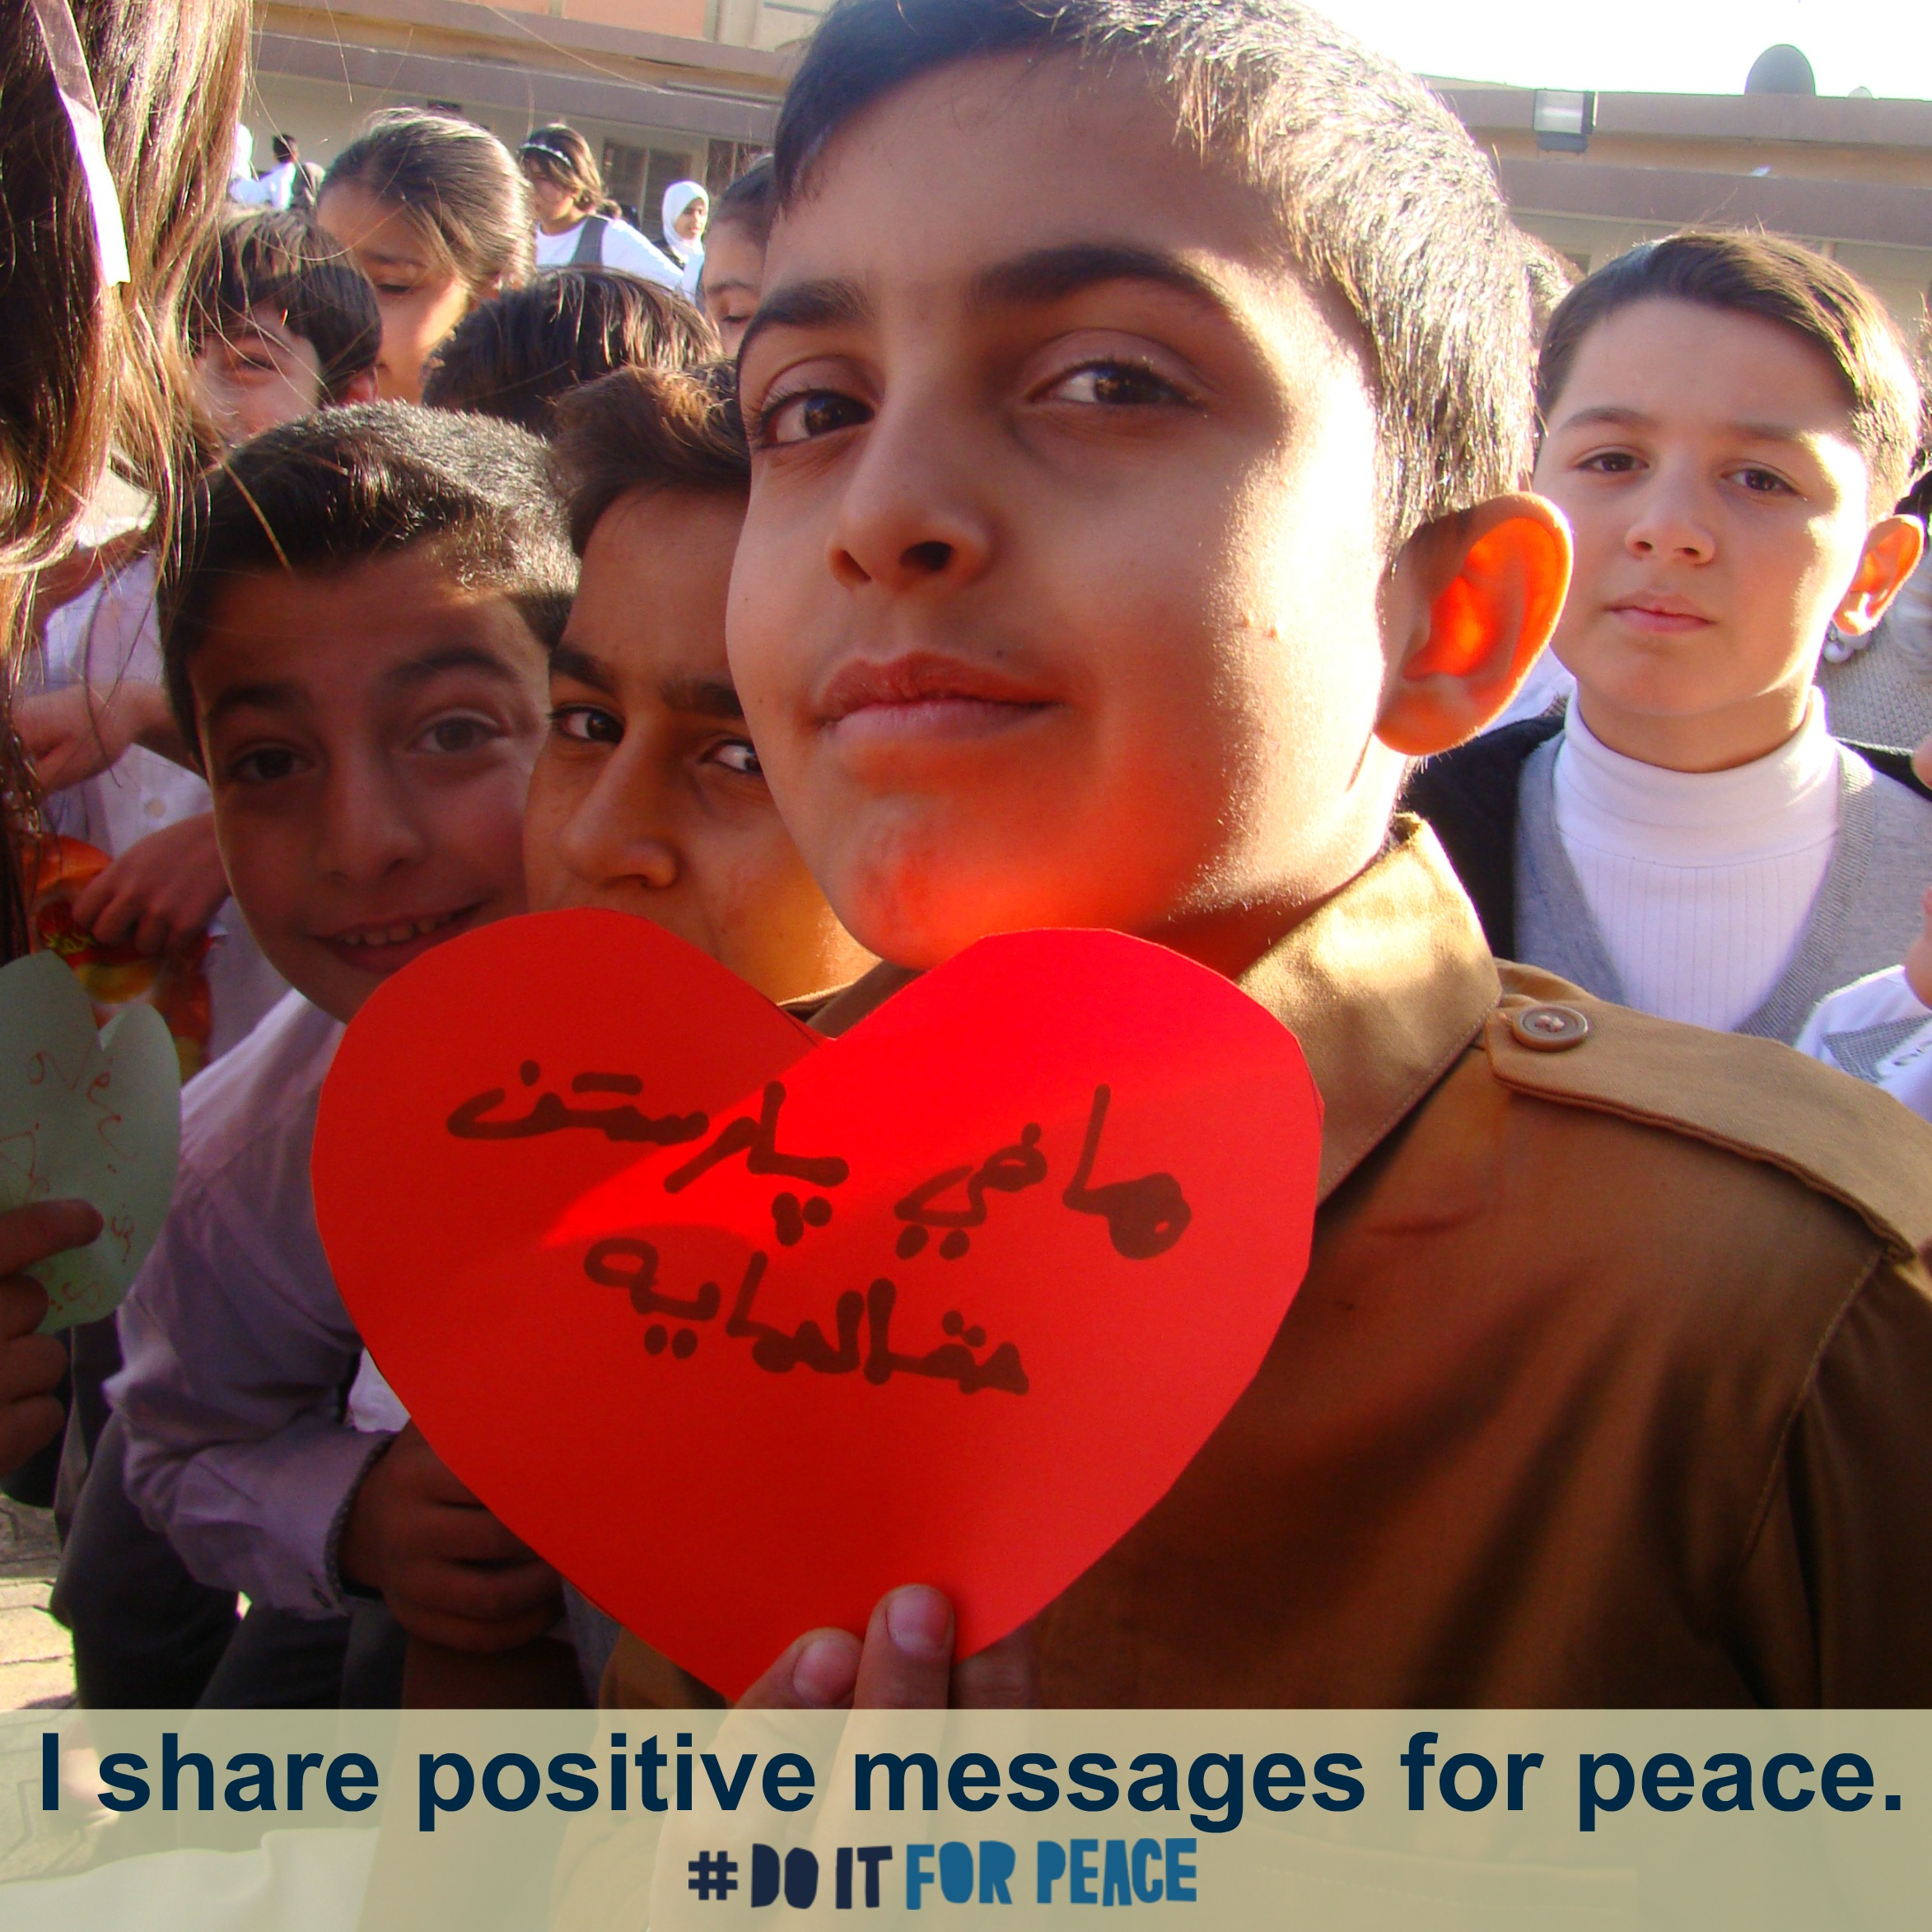 DIFP_Share positive messages